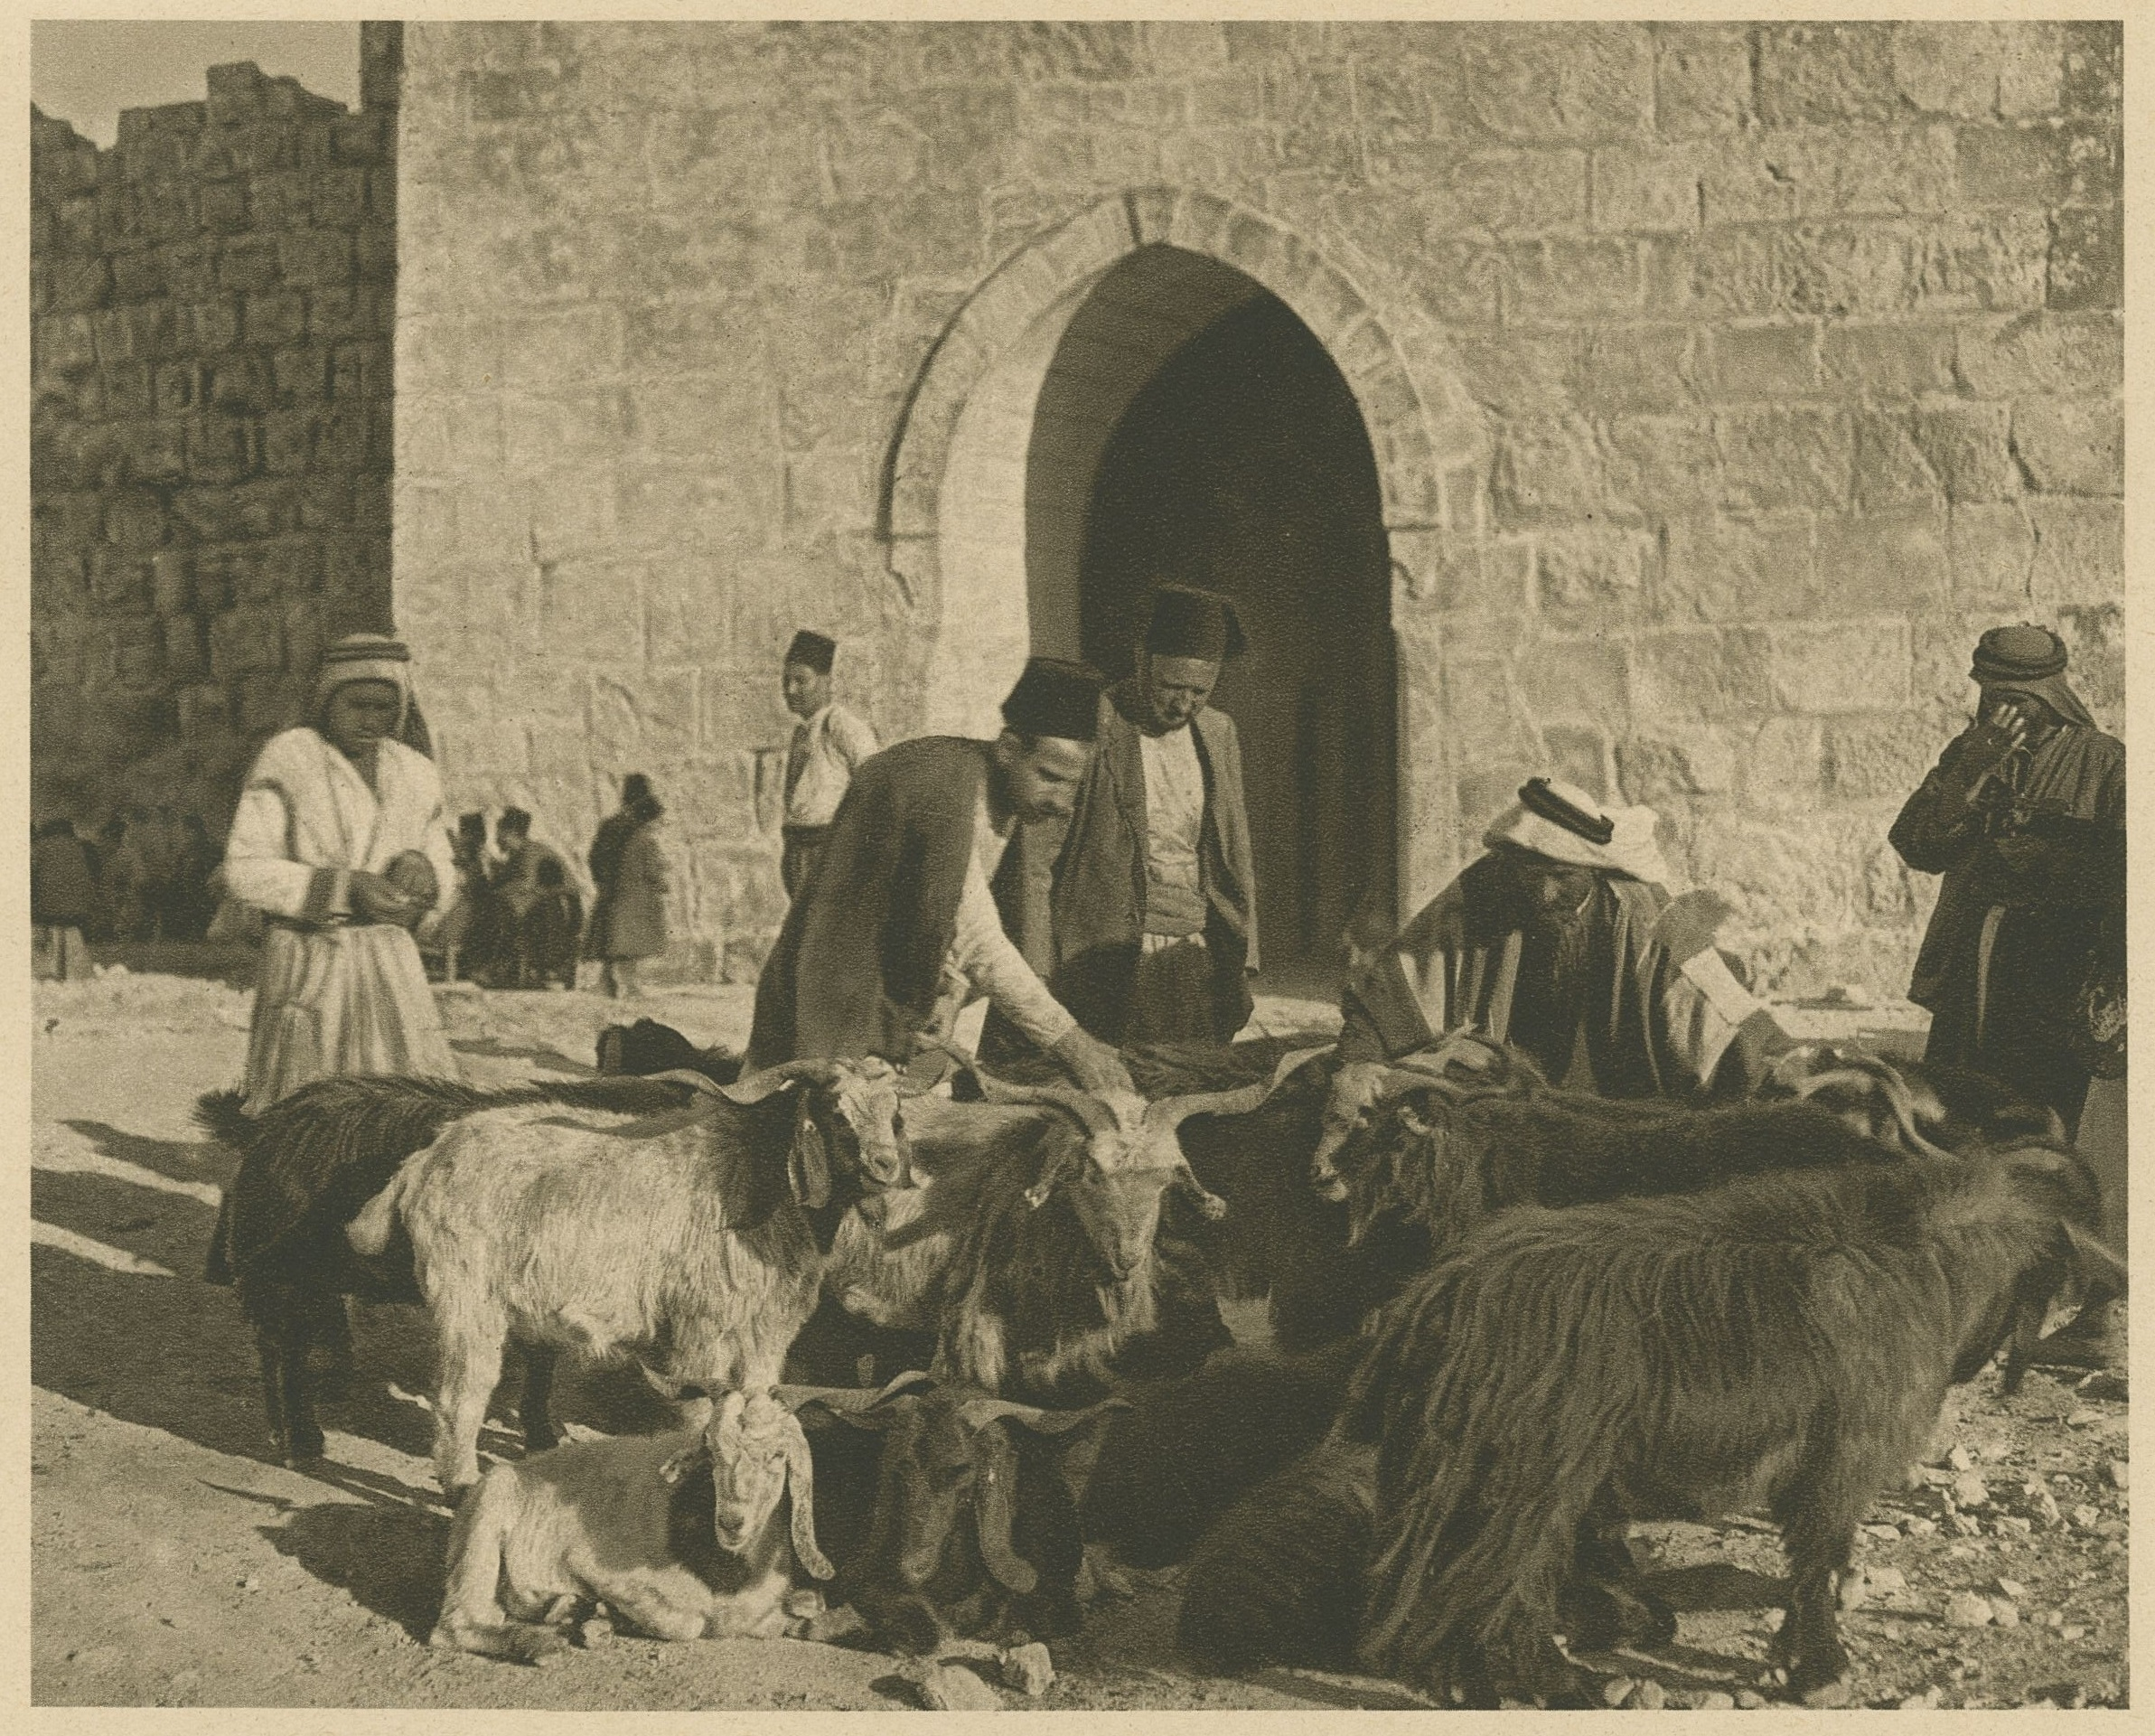 Men with herd in front of door of a building